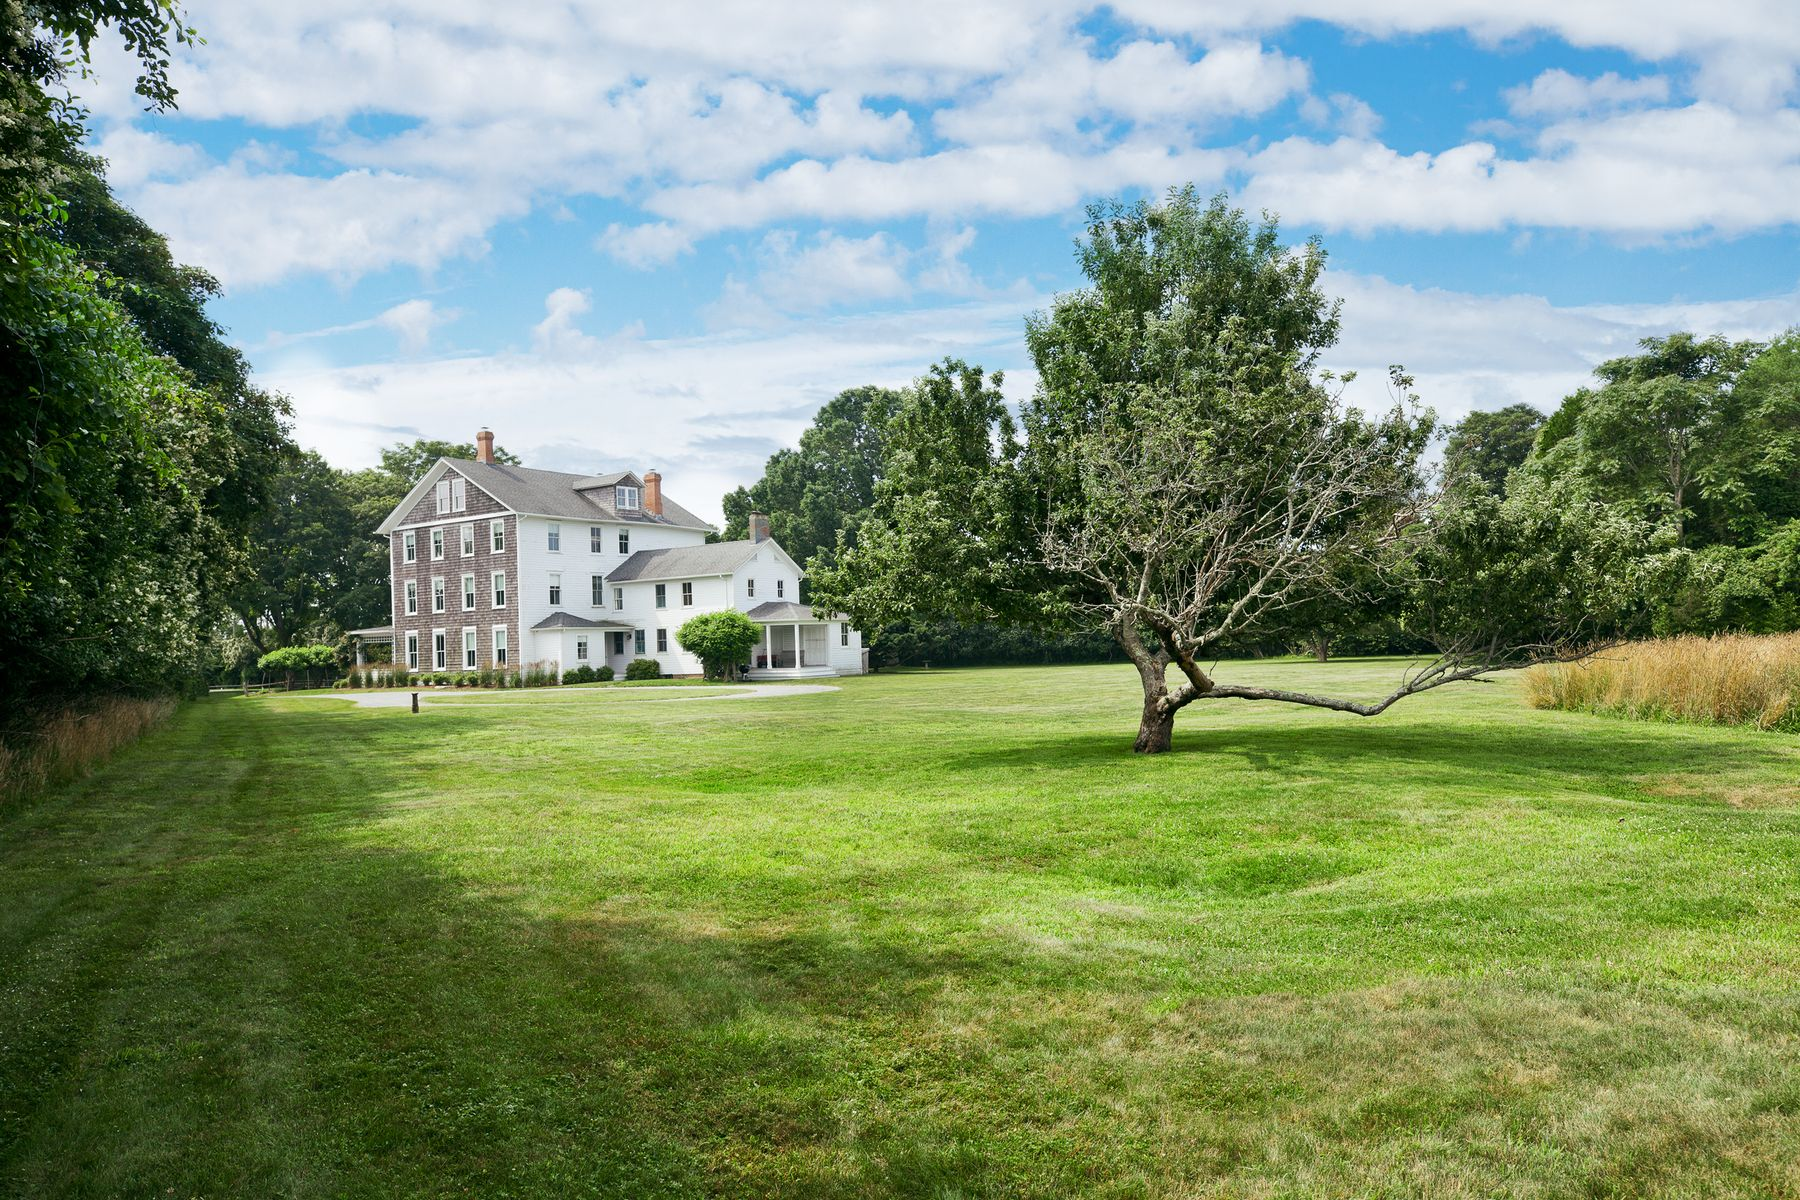 Single Family Homes for Active at 4 Acre Estate Near Ocean 72 Apaquogue Road East Hampton, New York 11937 United States